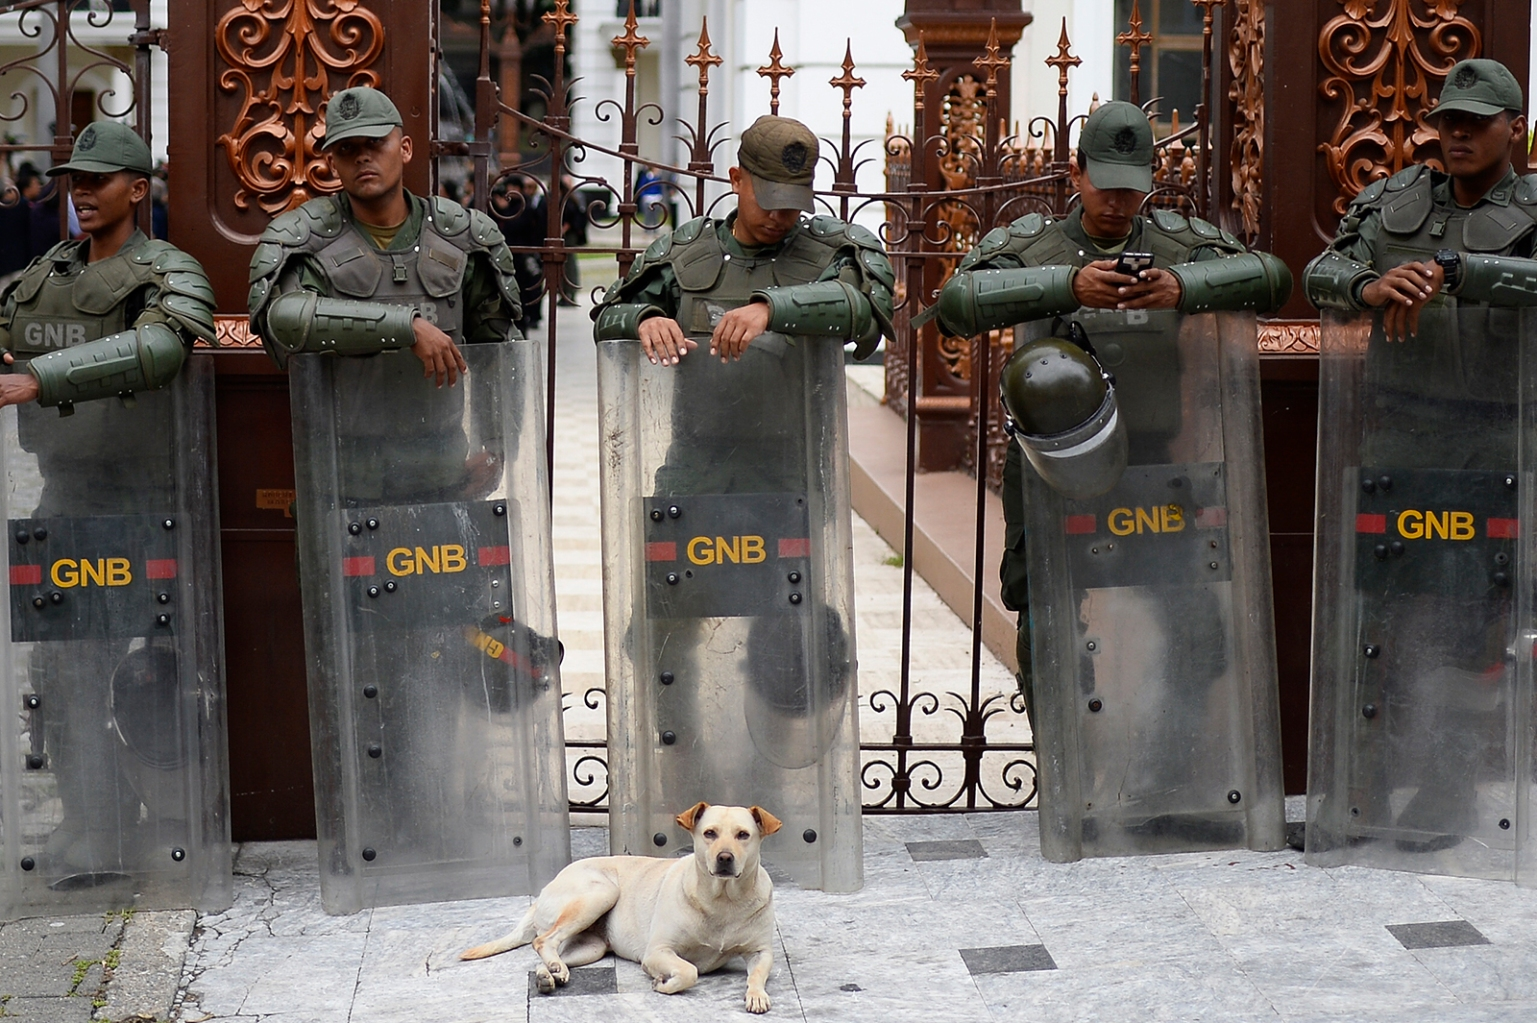 Members of the Venezuelan National Guard stand outside the National Assembly in Caracas on Sept. 24. MATIAS DELACROIX/AFP/Getty Images